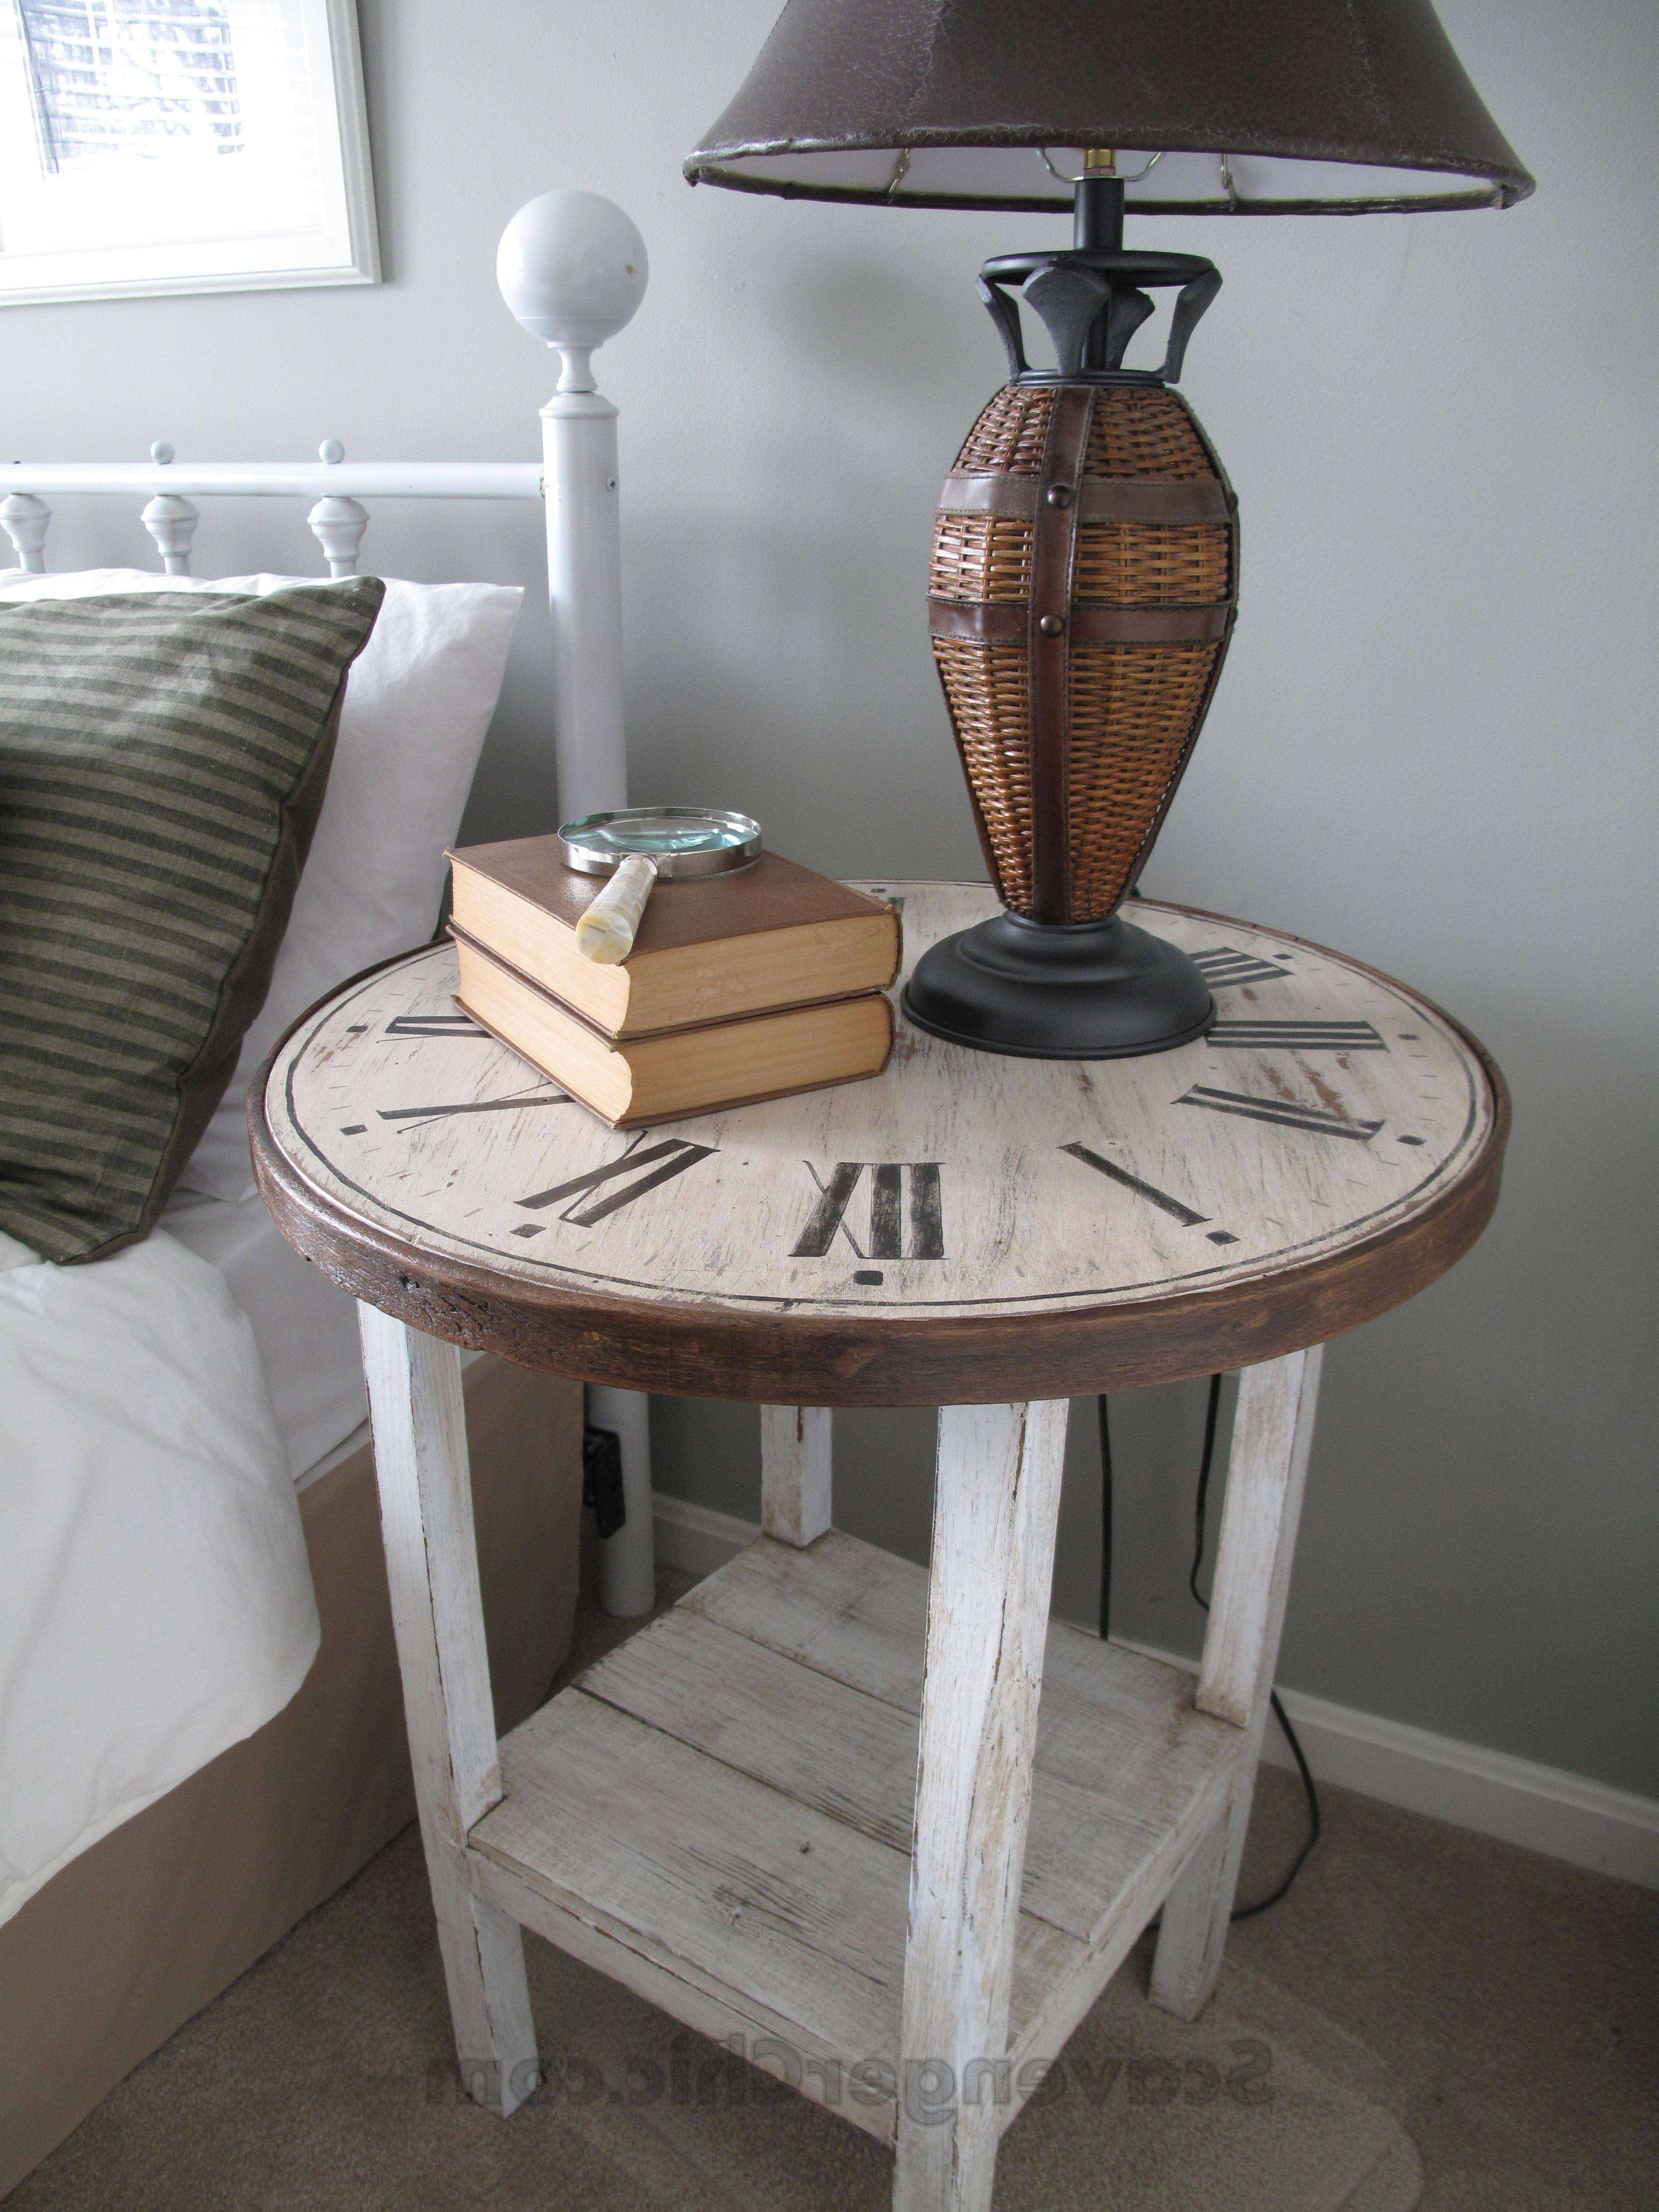 Clock Table From A Flea Market Find – Scavenger Chic Inside Fashionable Coffee Tables With Clock Top (View 9 of 20)